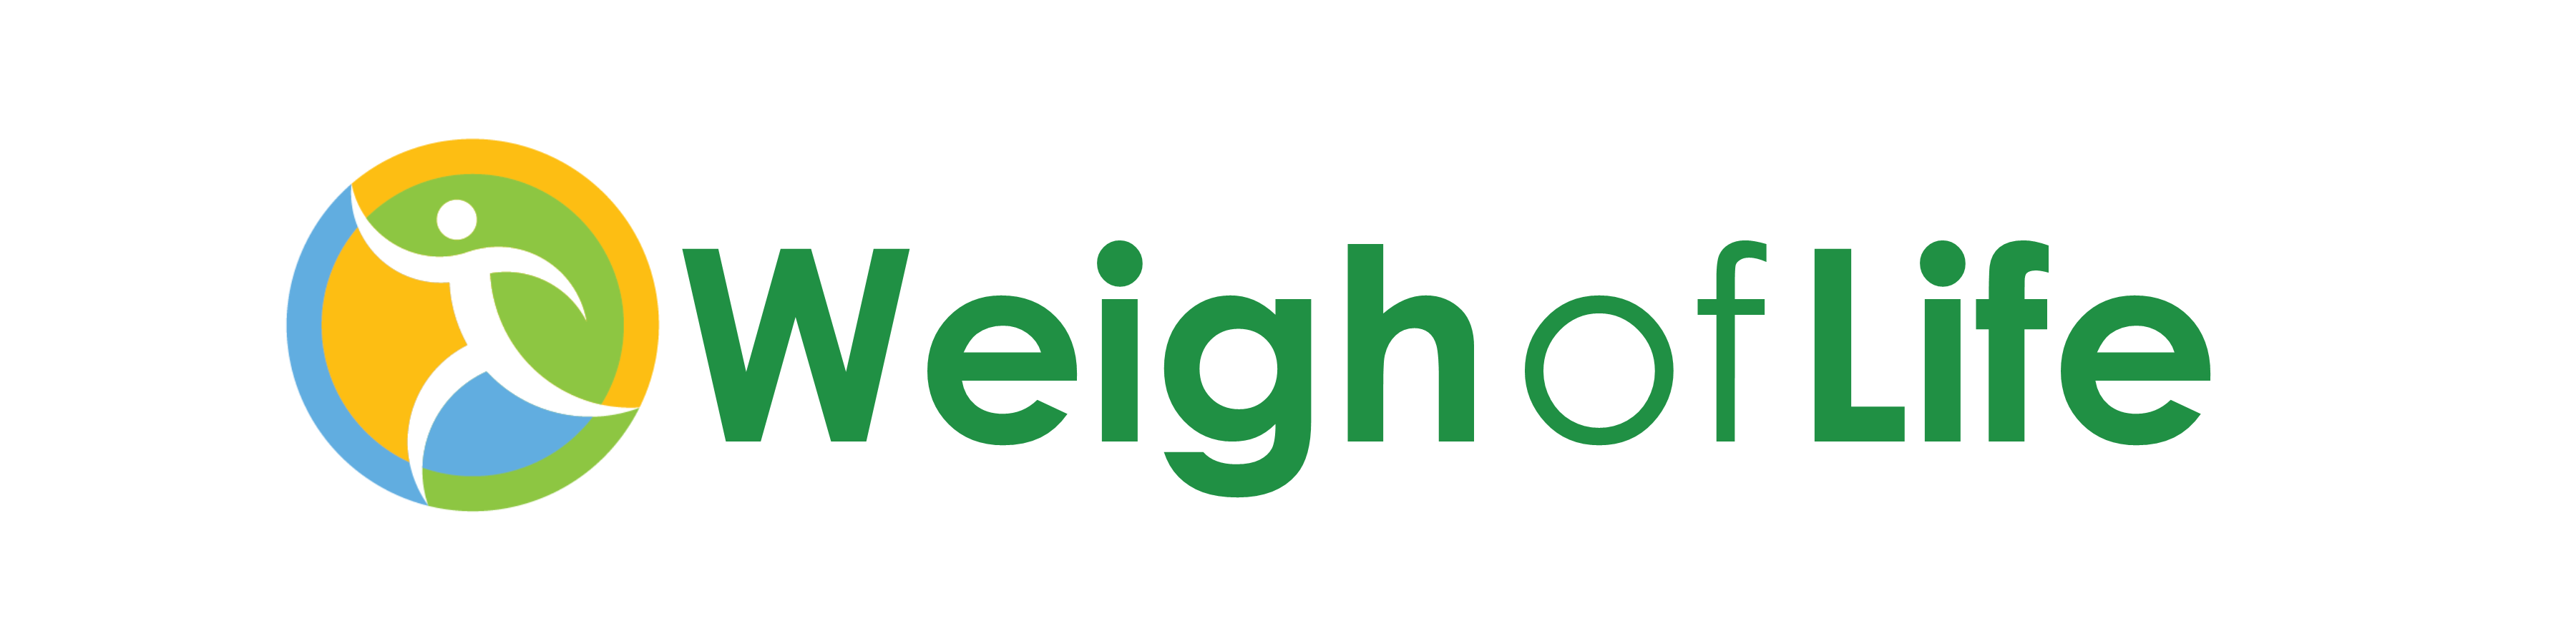 Weigh of Life logo